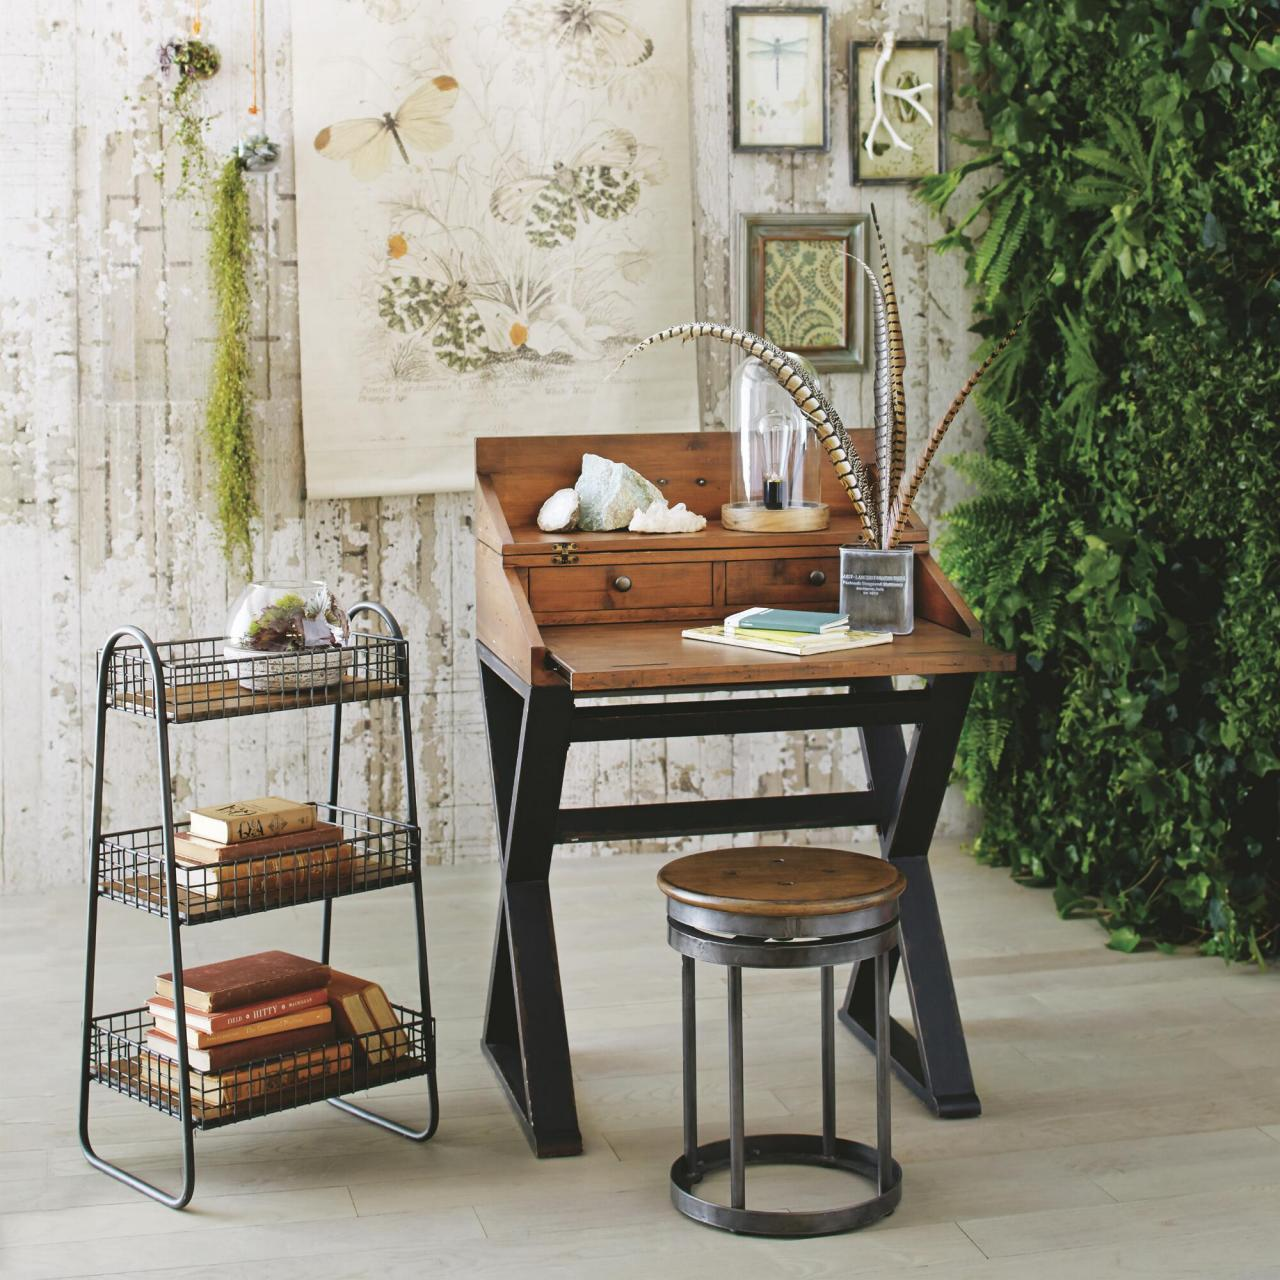 12 tiny desks for tiny home offices hgtv 39 s decorating for Petite table decorative